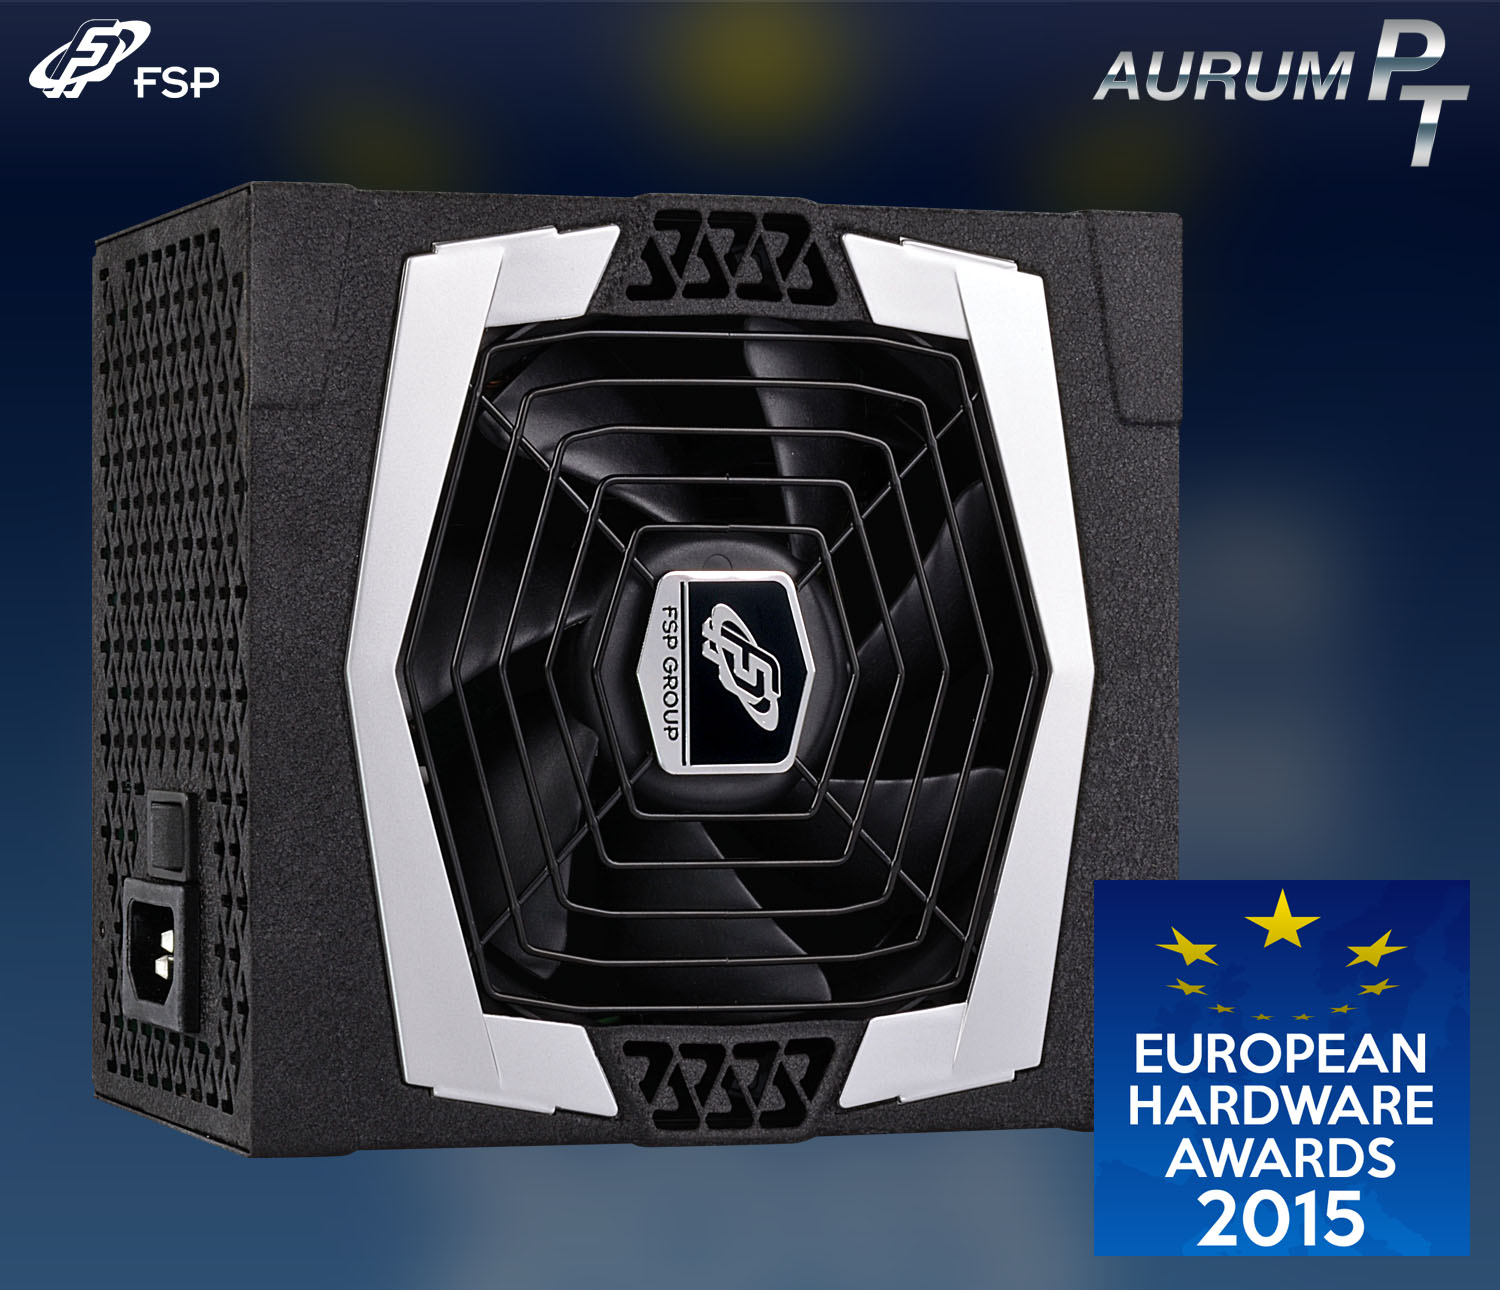 20150505_aurum_pt_-_european_hardware_awards